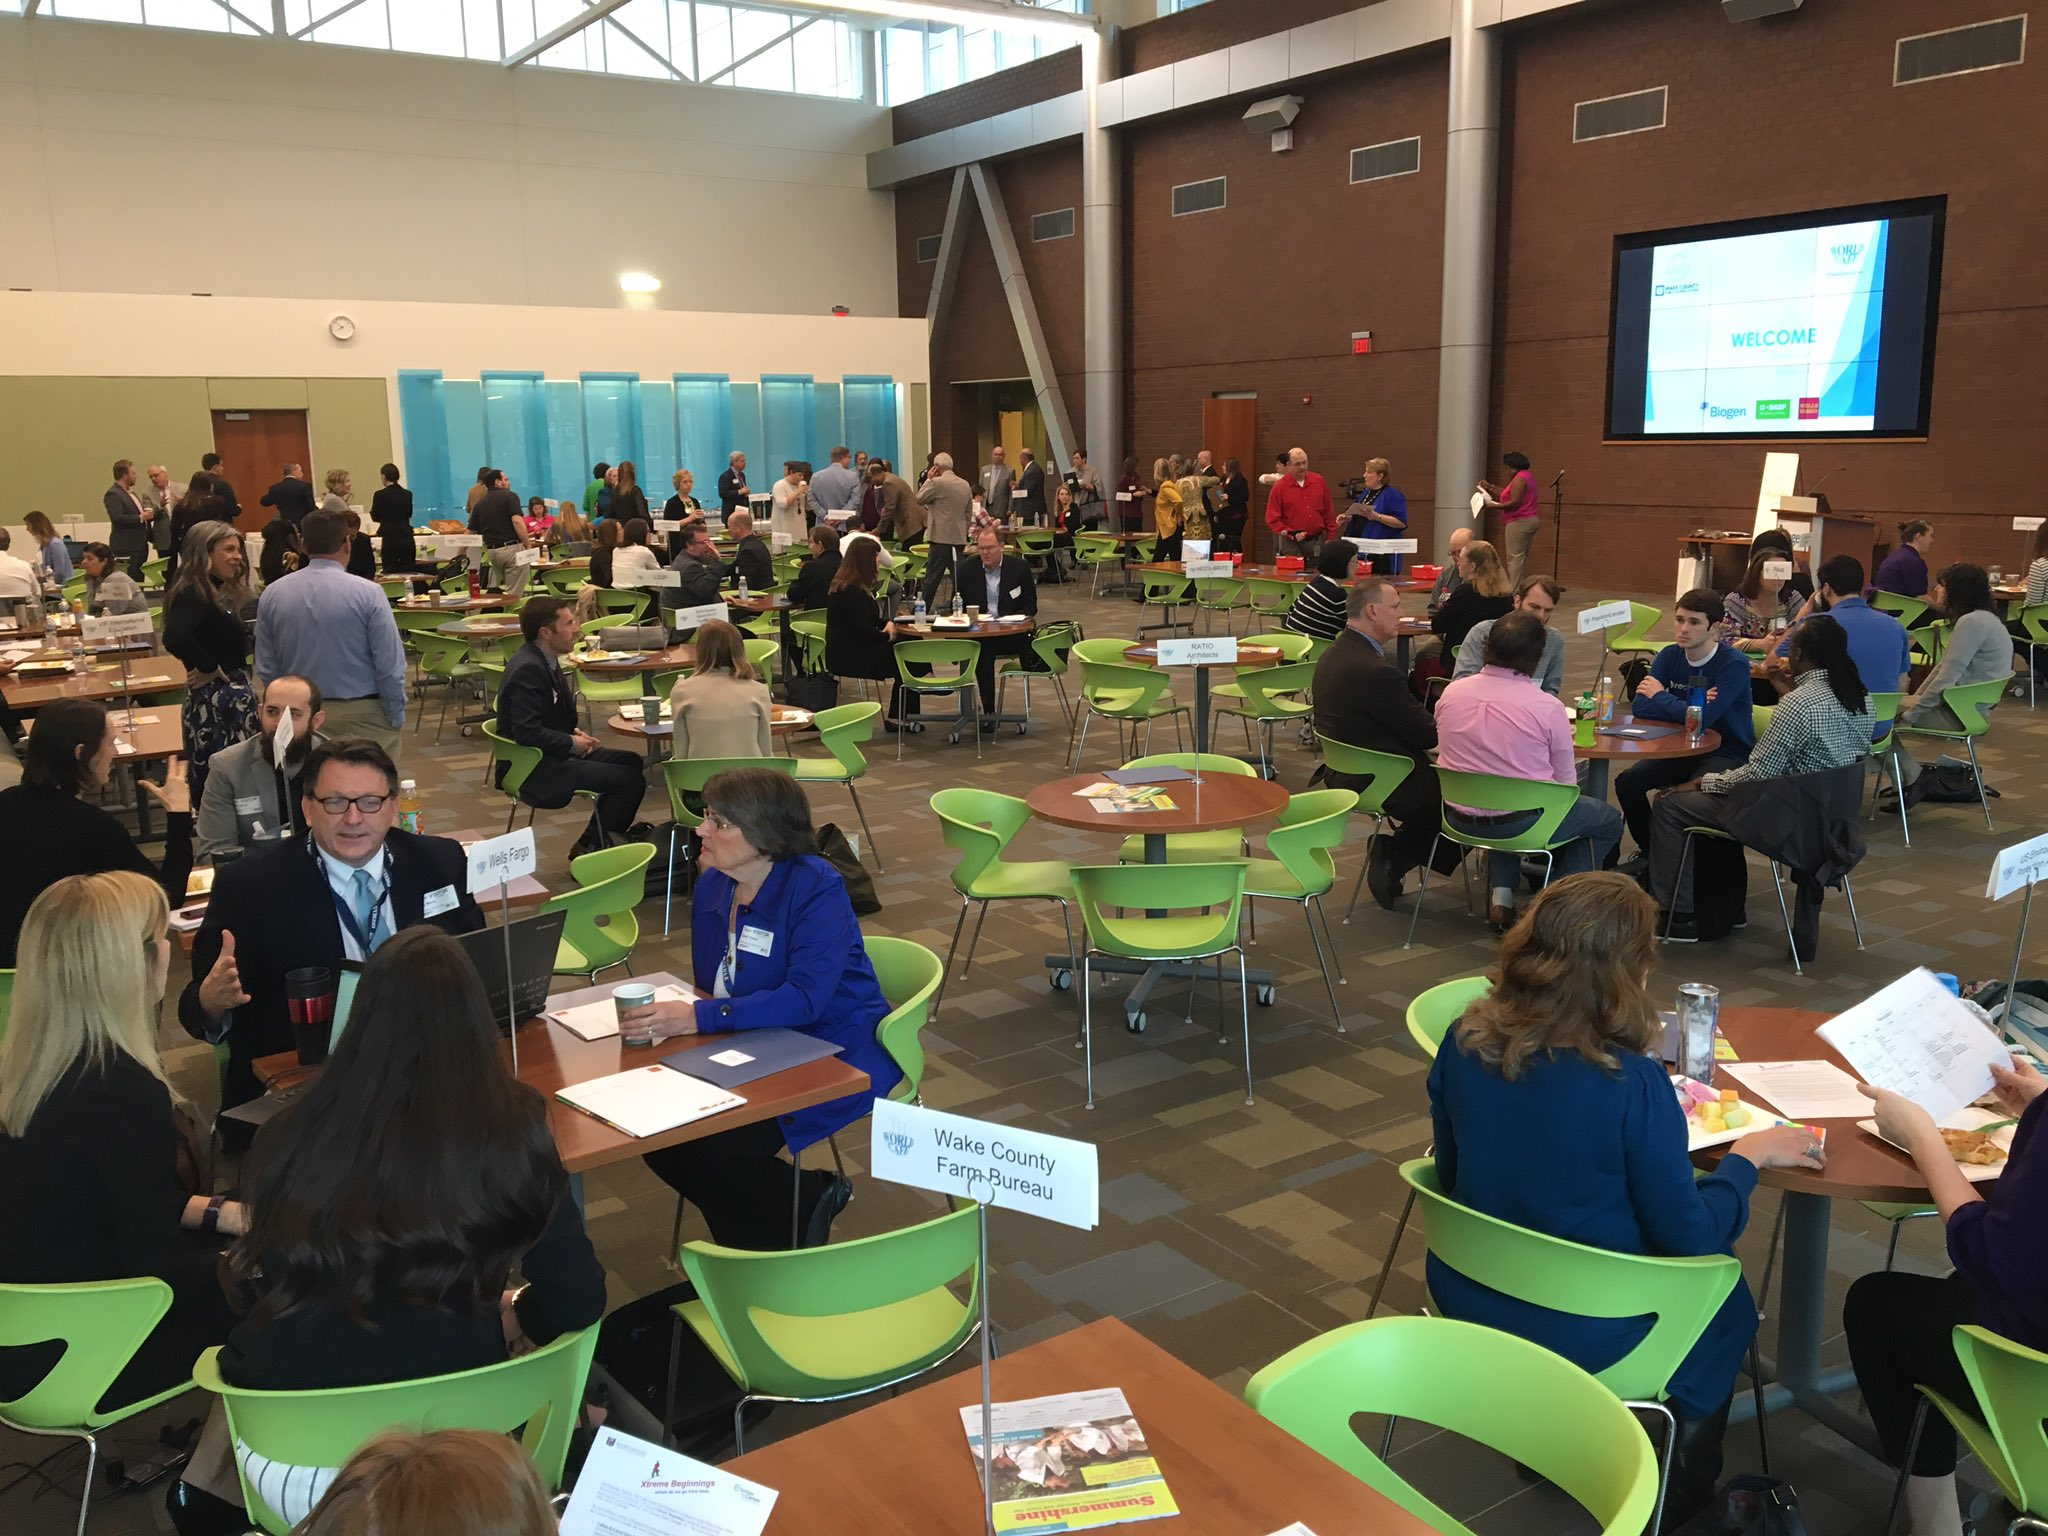 Ready for an amazing day at @wakeedpa #WorldCafe ! @WCPSS #BuildingMoreThanBuildings https://t.co/M1KrhoQnSc